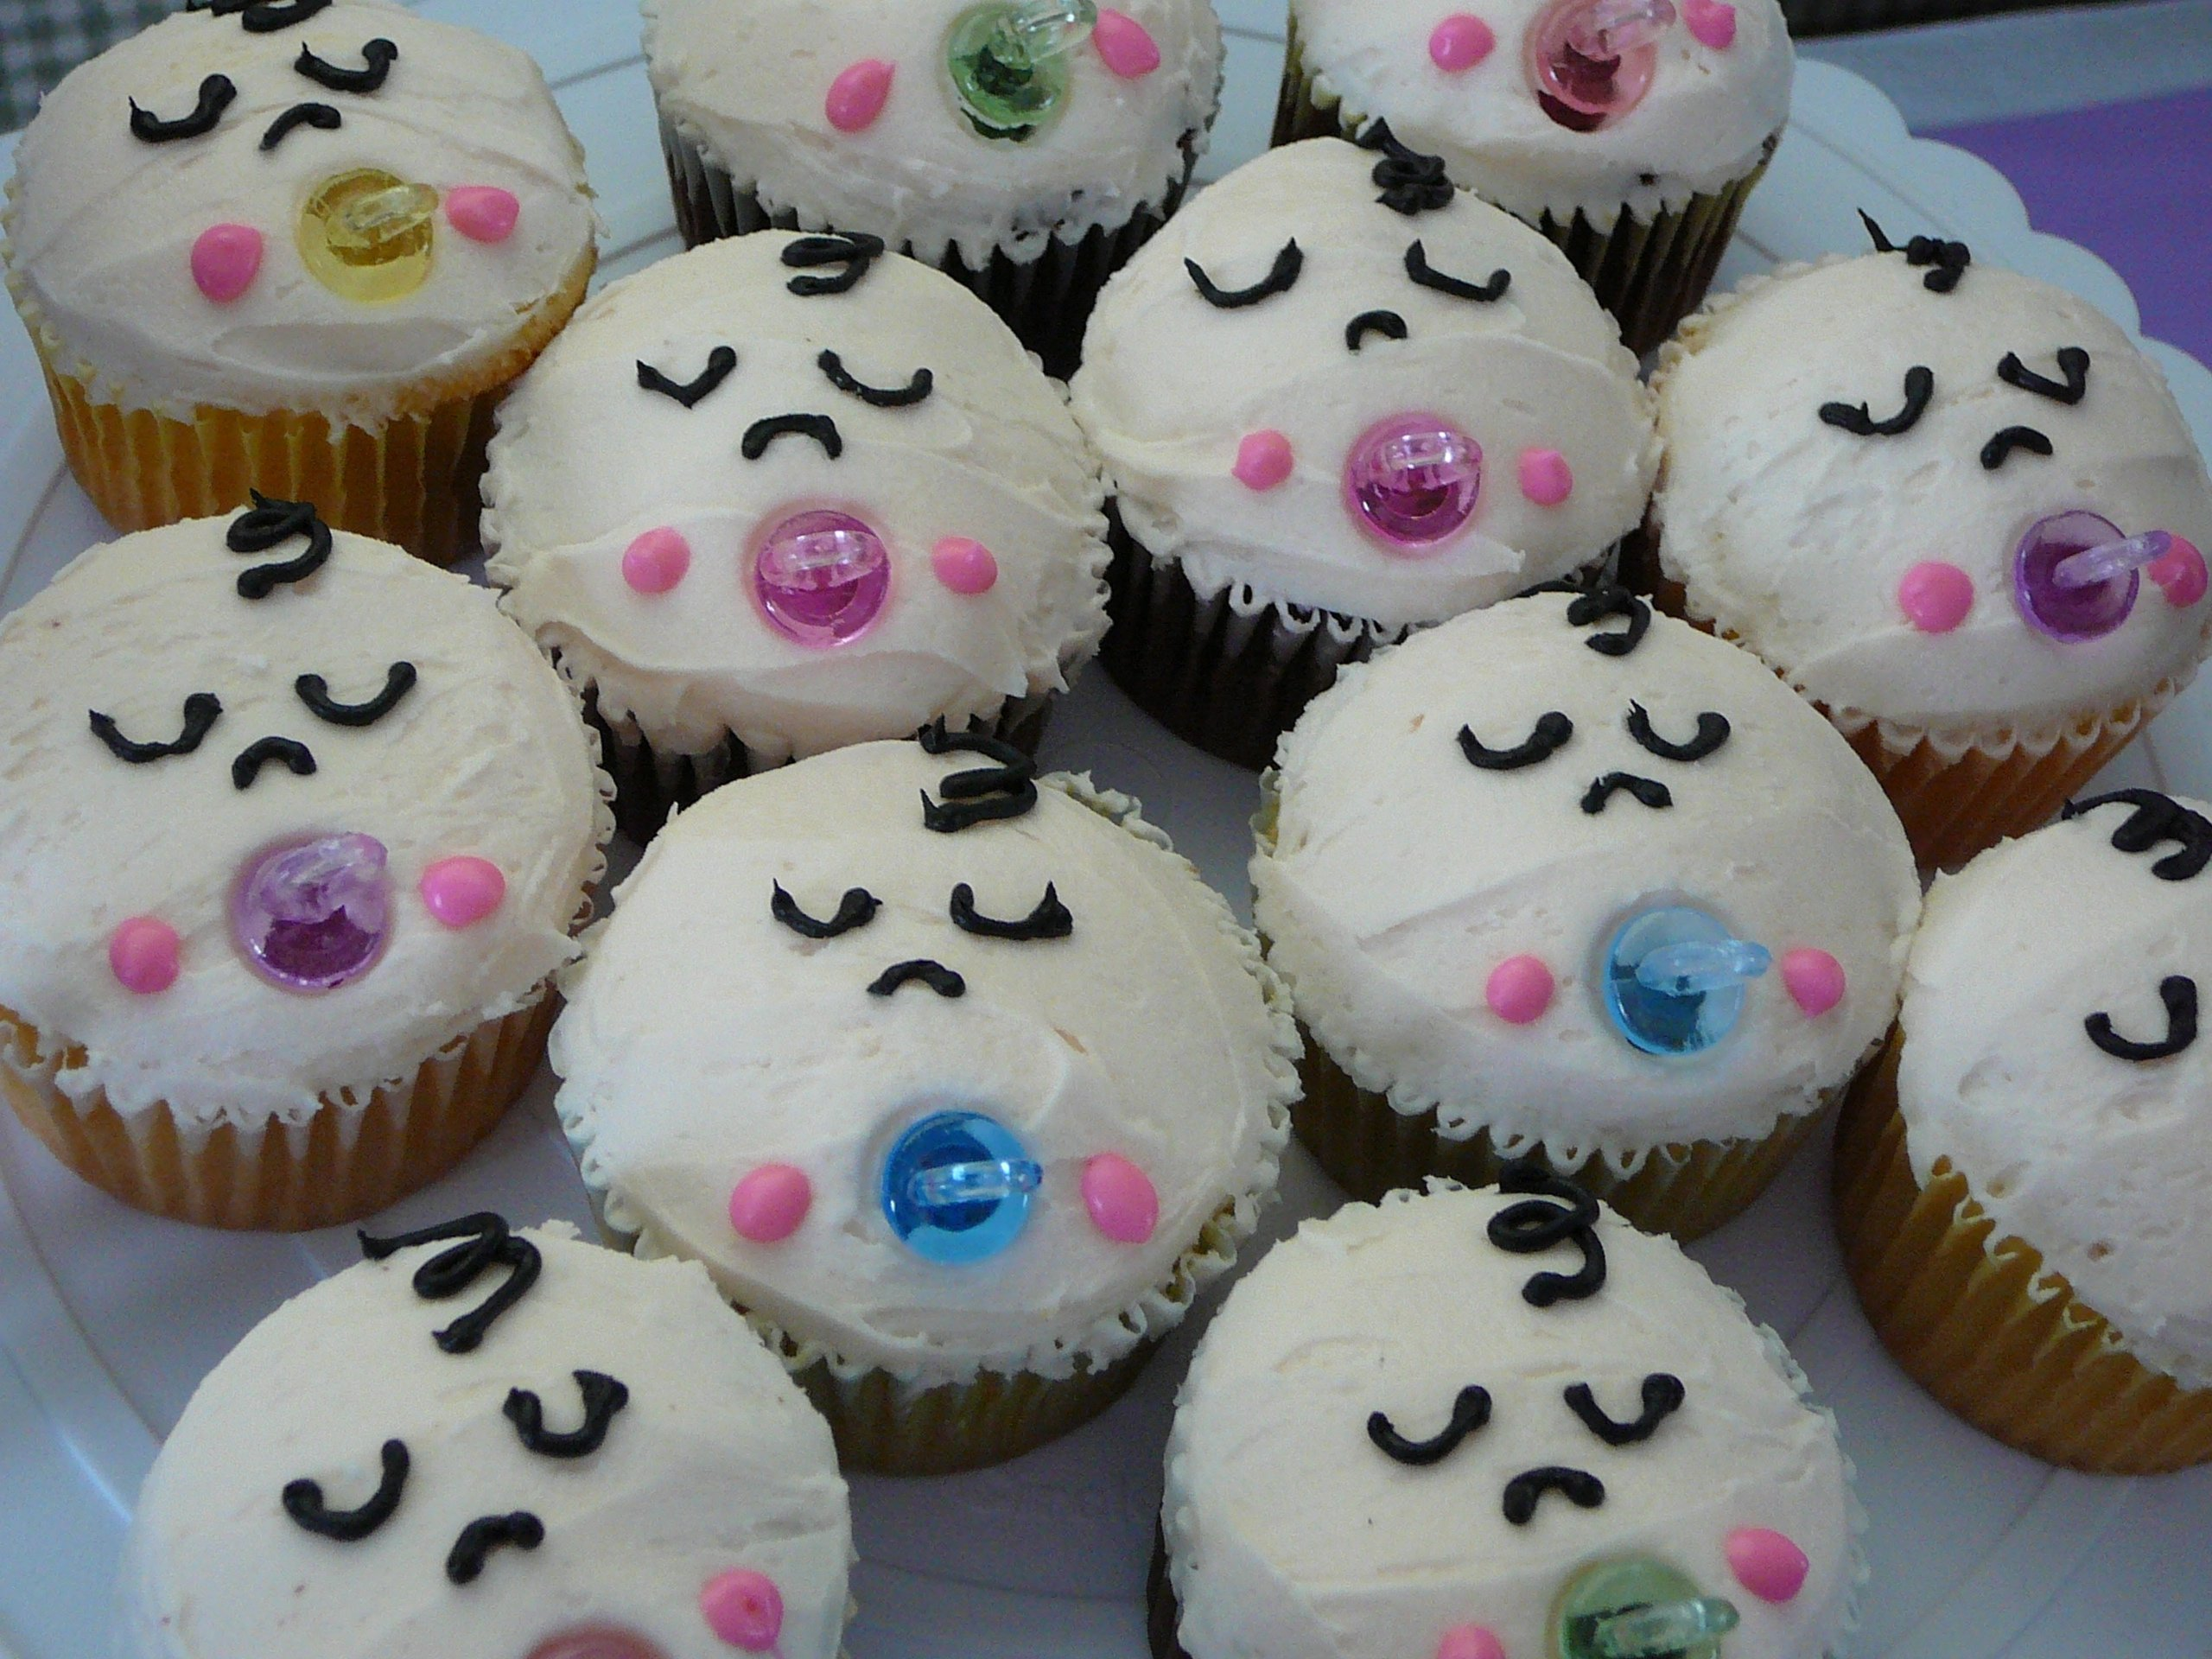 10 Famous Baby Shower Cupcake Decorating Ideas baby shower cakes baby shower cupcakes decorations 2021